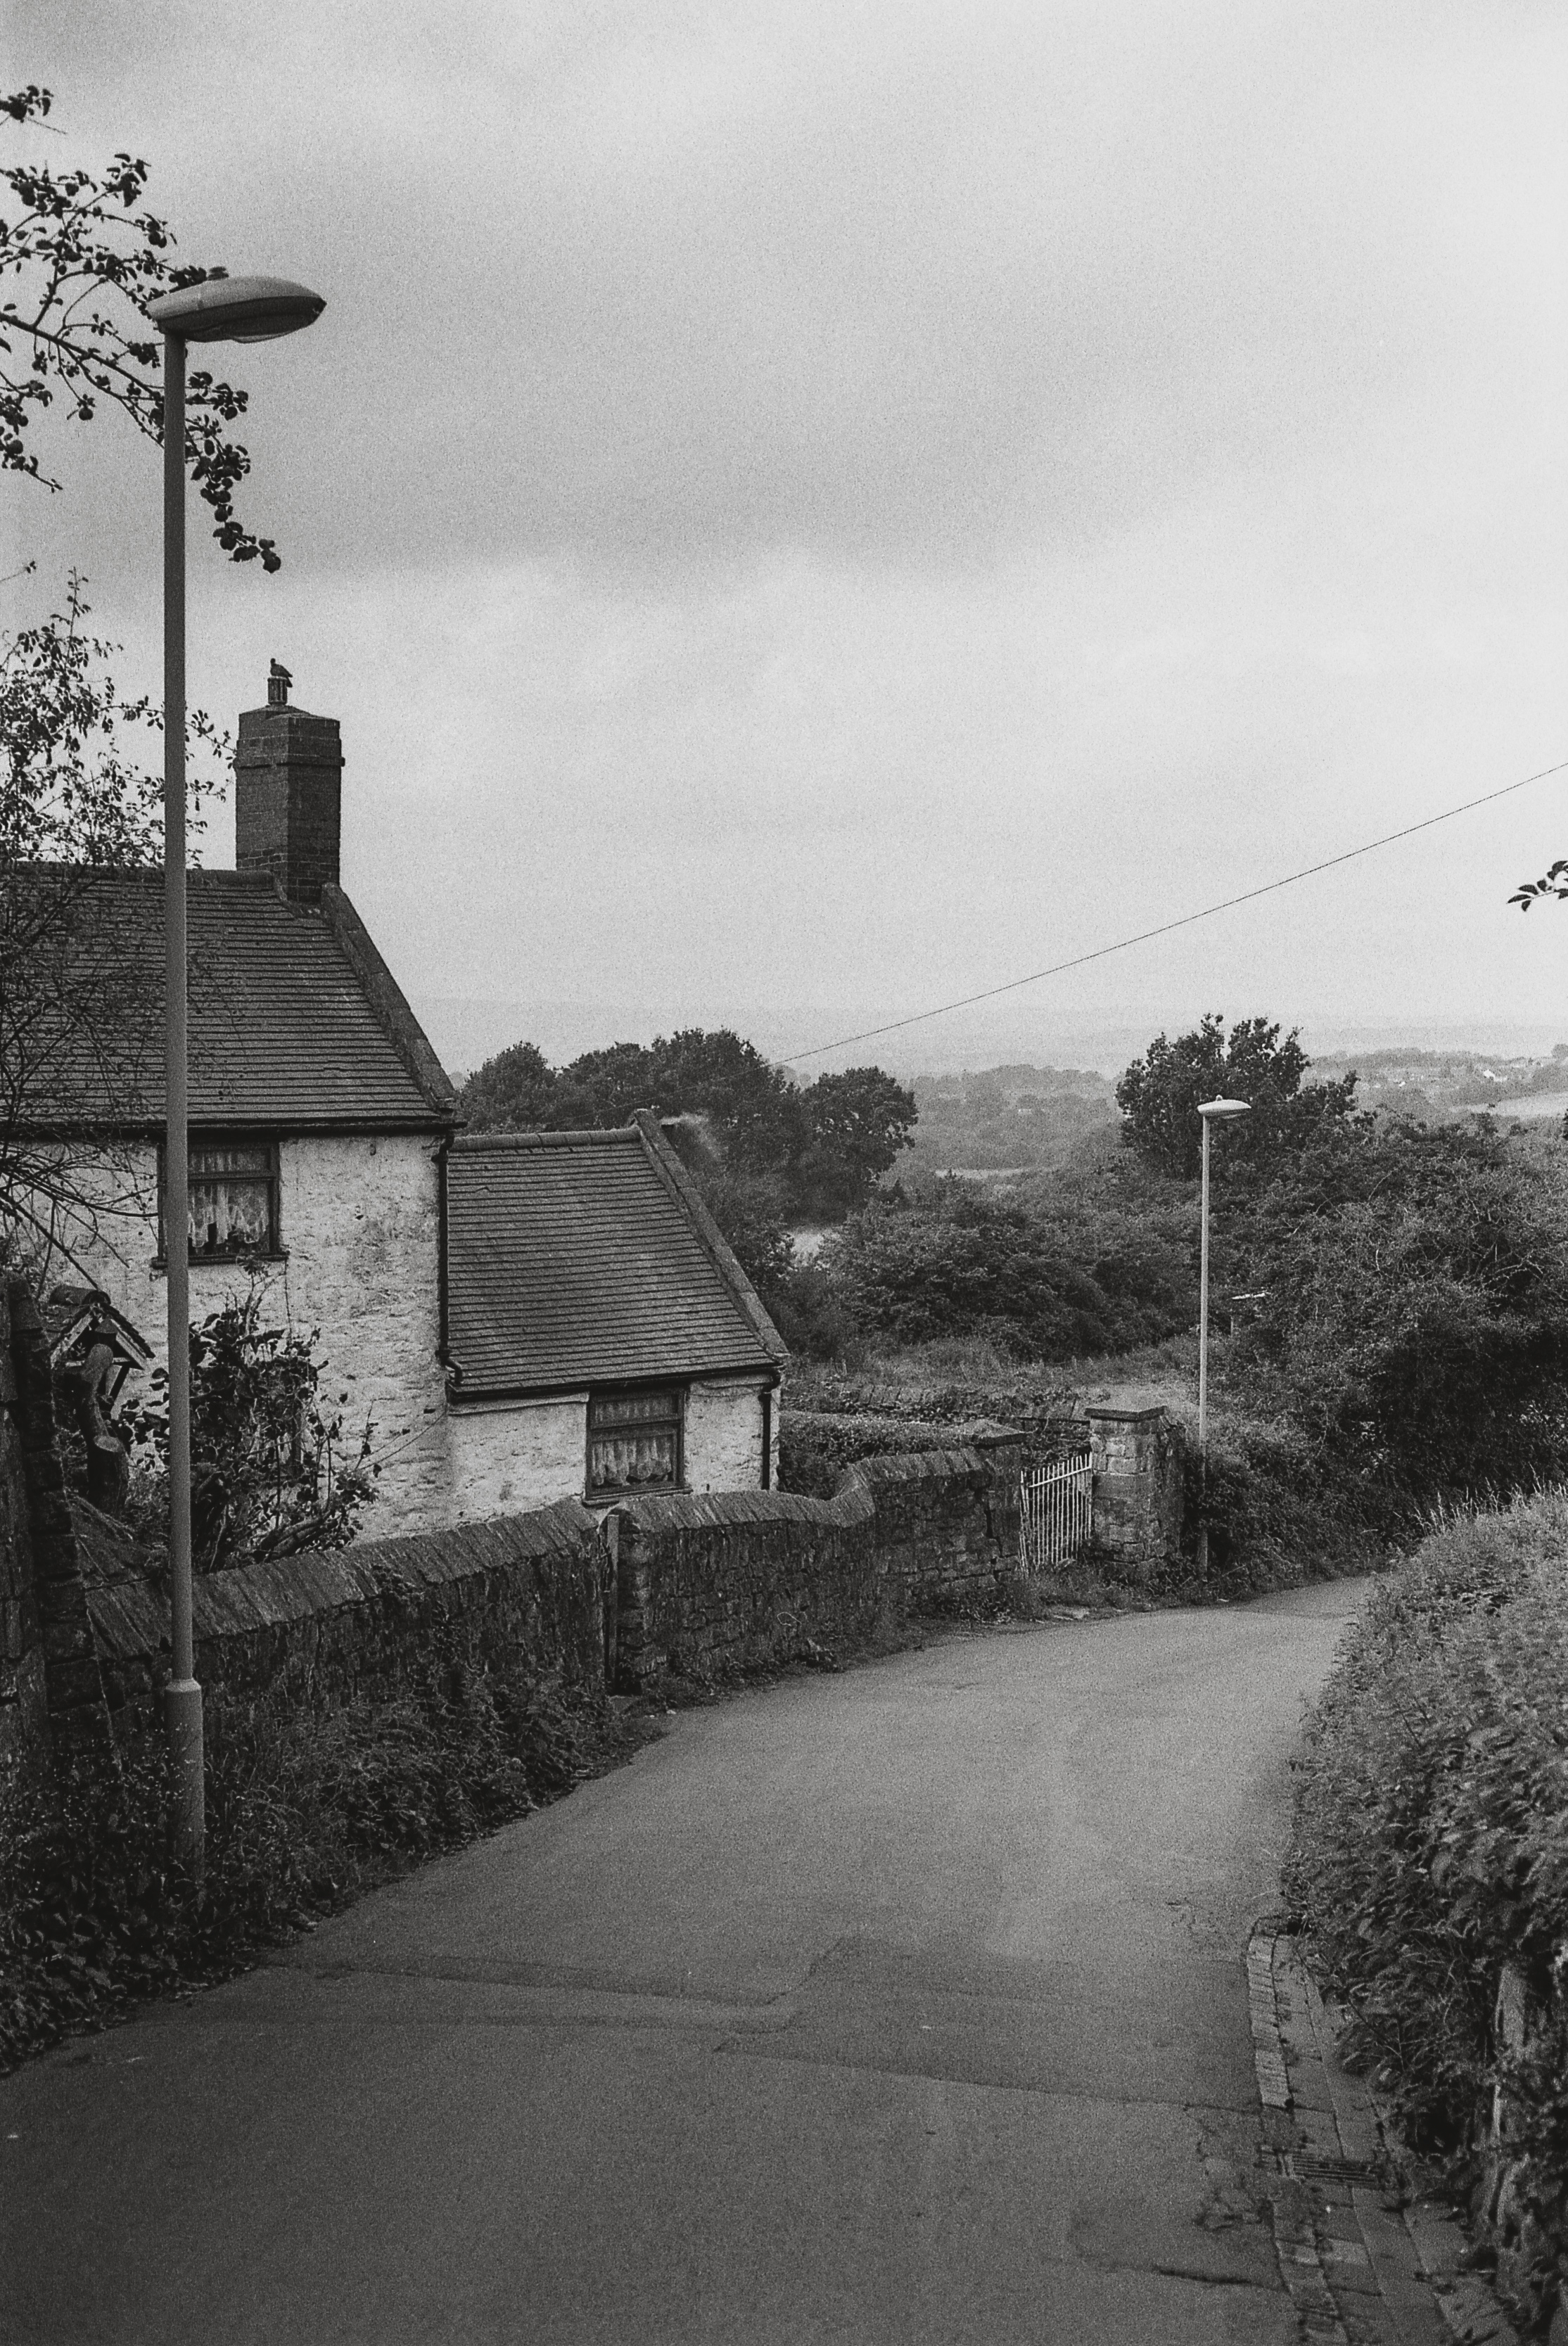 Black and white print of a village road